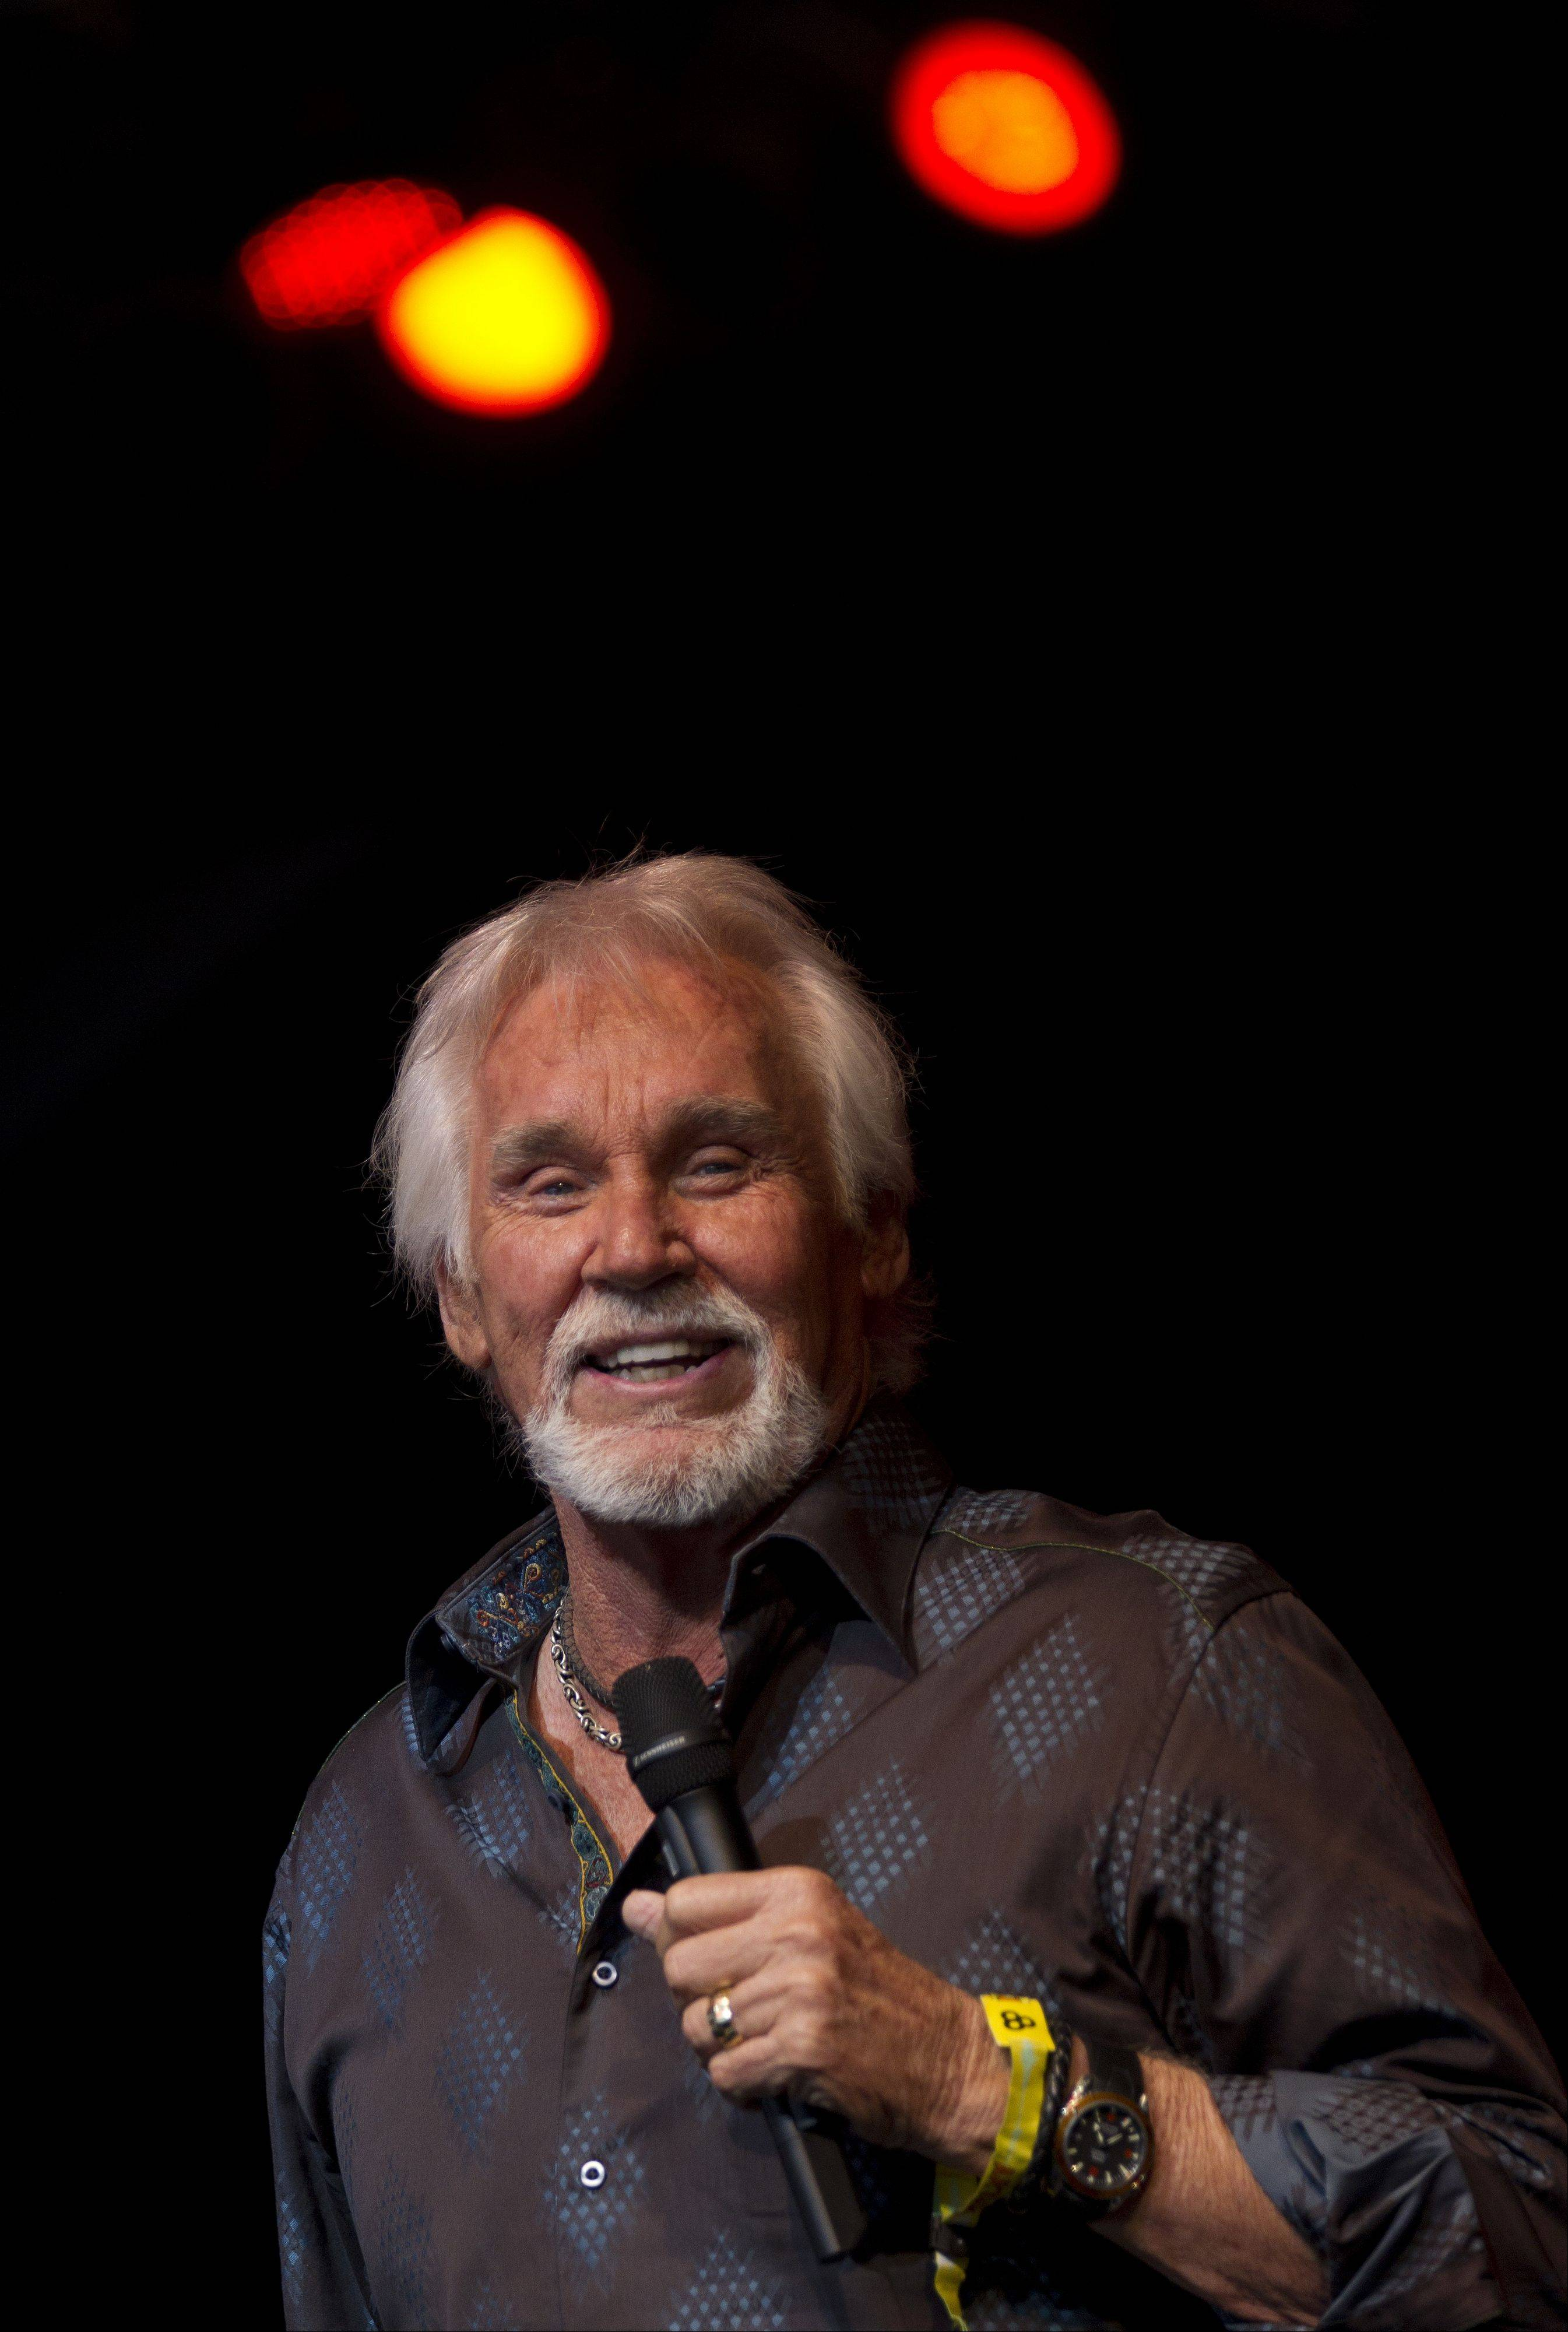 Kenny Rogers is set to perform at the Arcada Theatre in St. Charles.